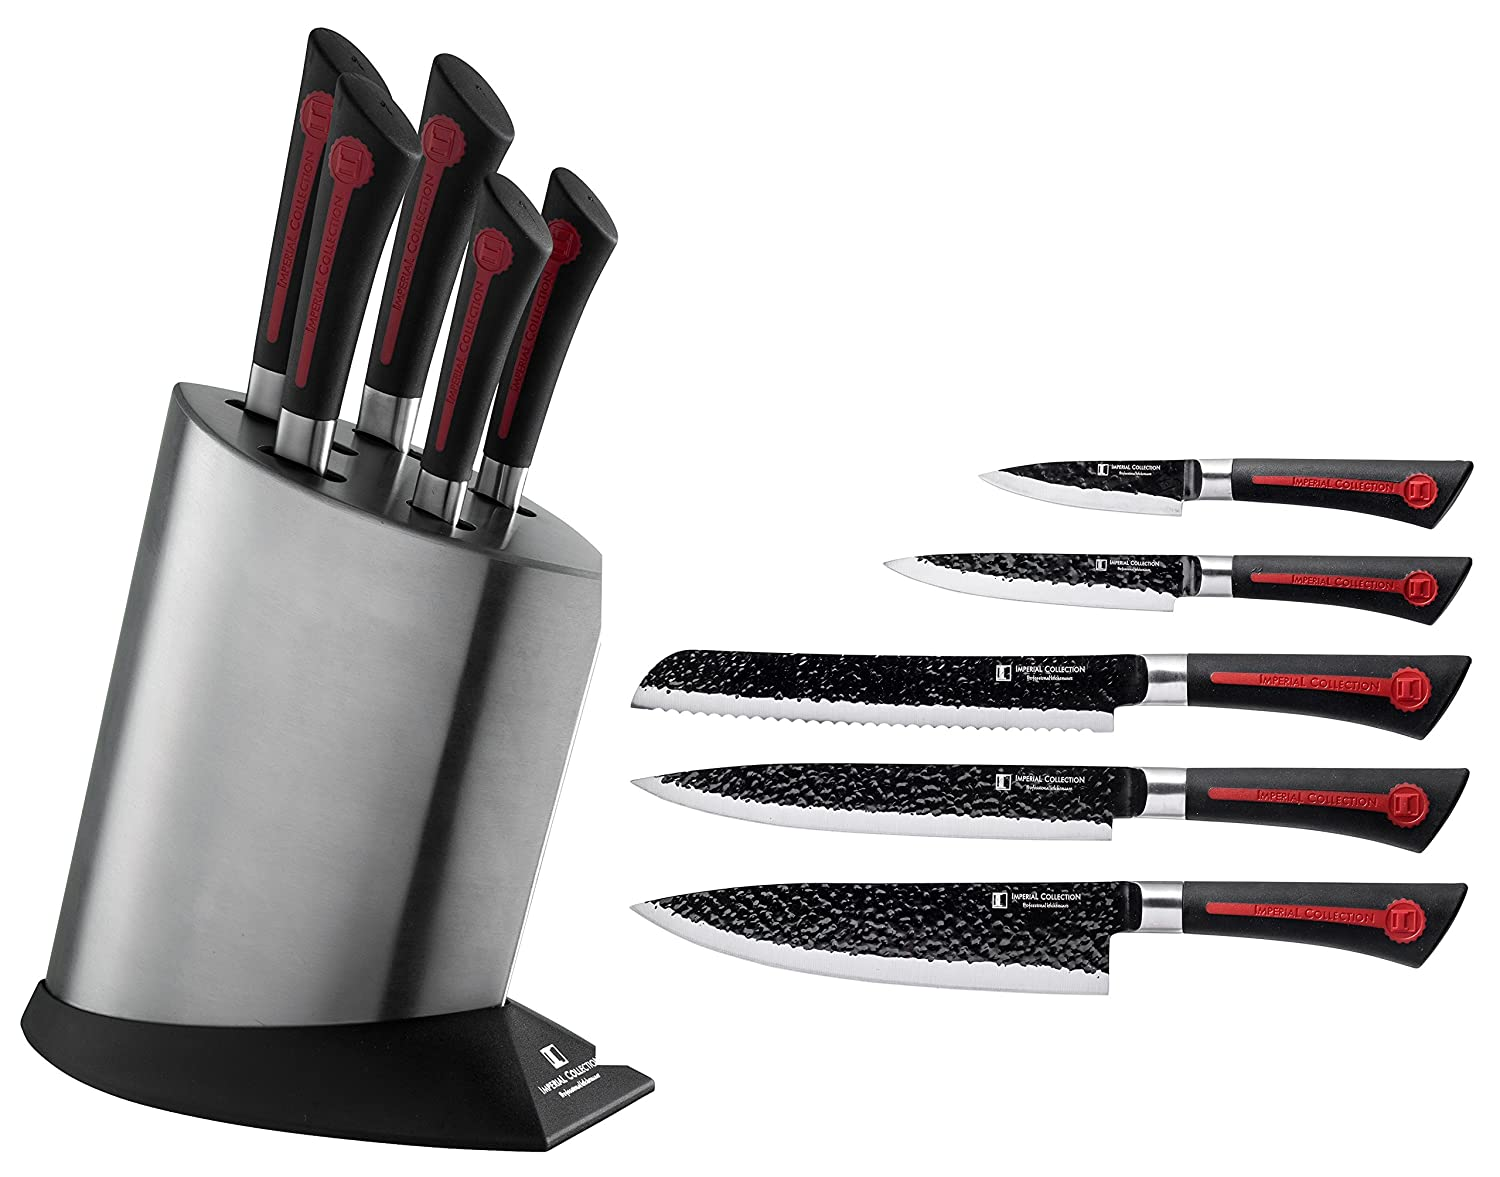 Stainless Steel Kitchen Cutlery Knife Set Knife Block